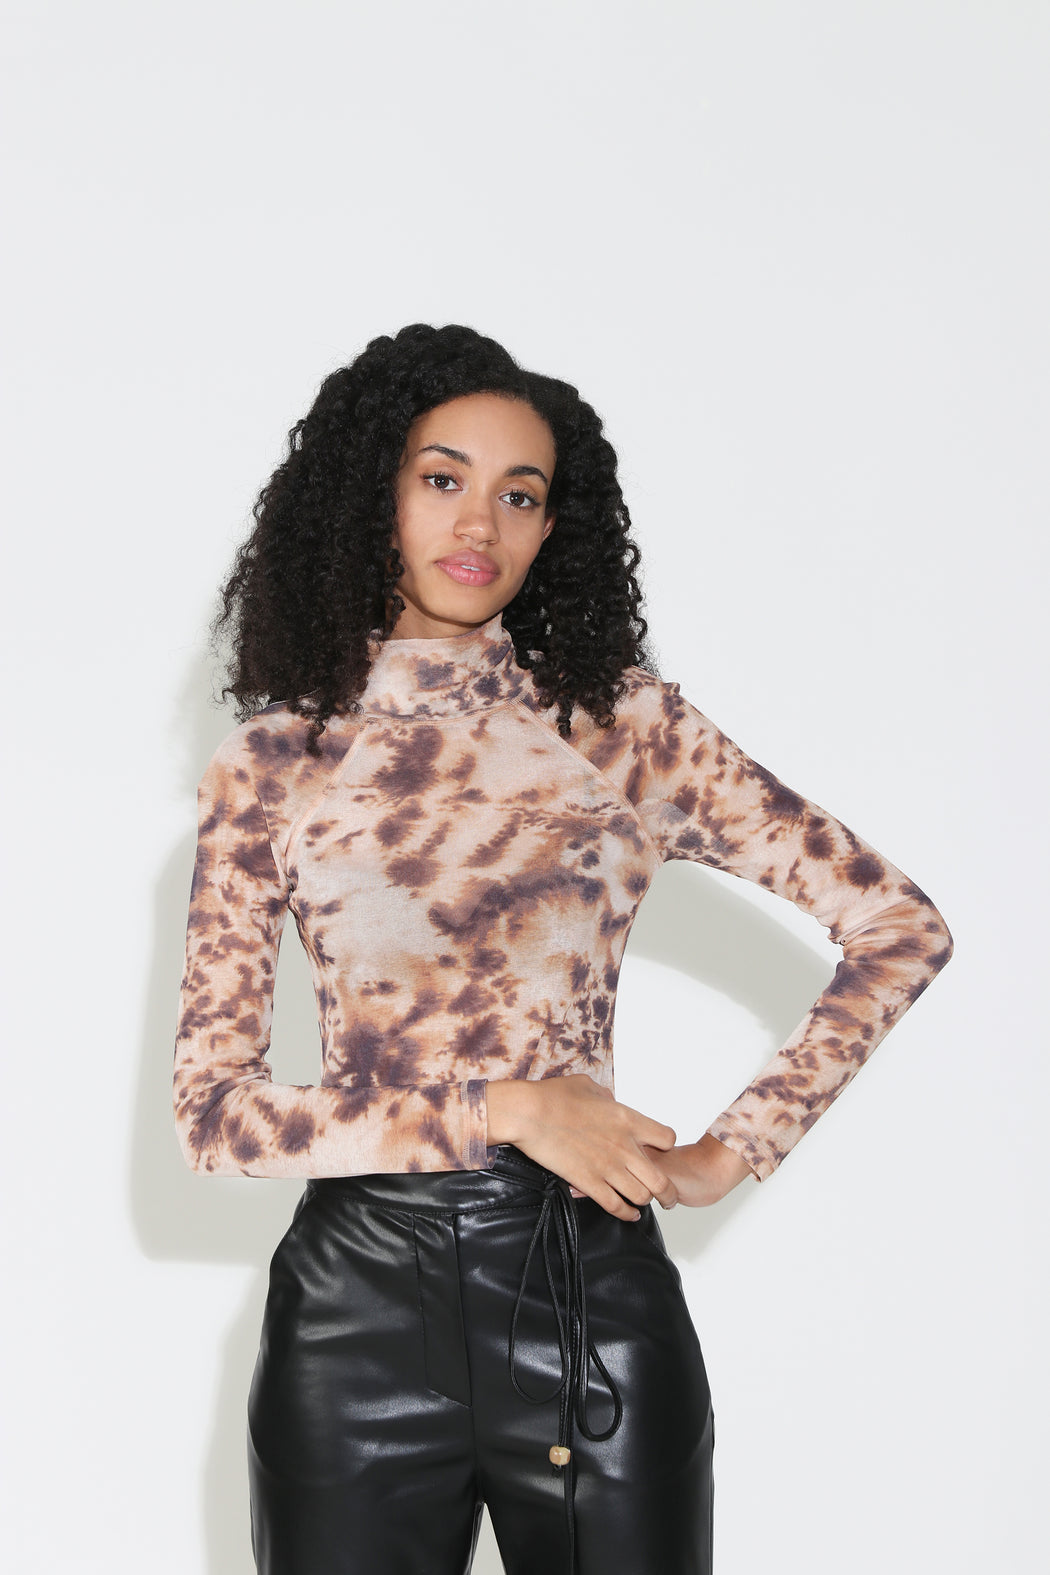 Nanushka Madi Raglan Turtleneck Top in Tie Dye